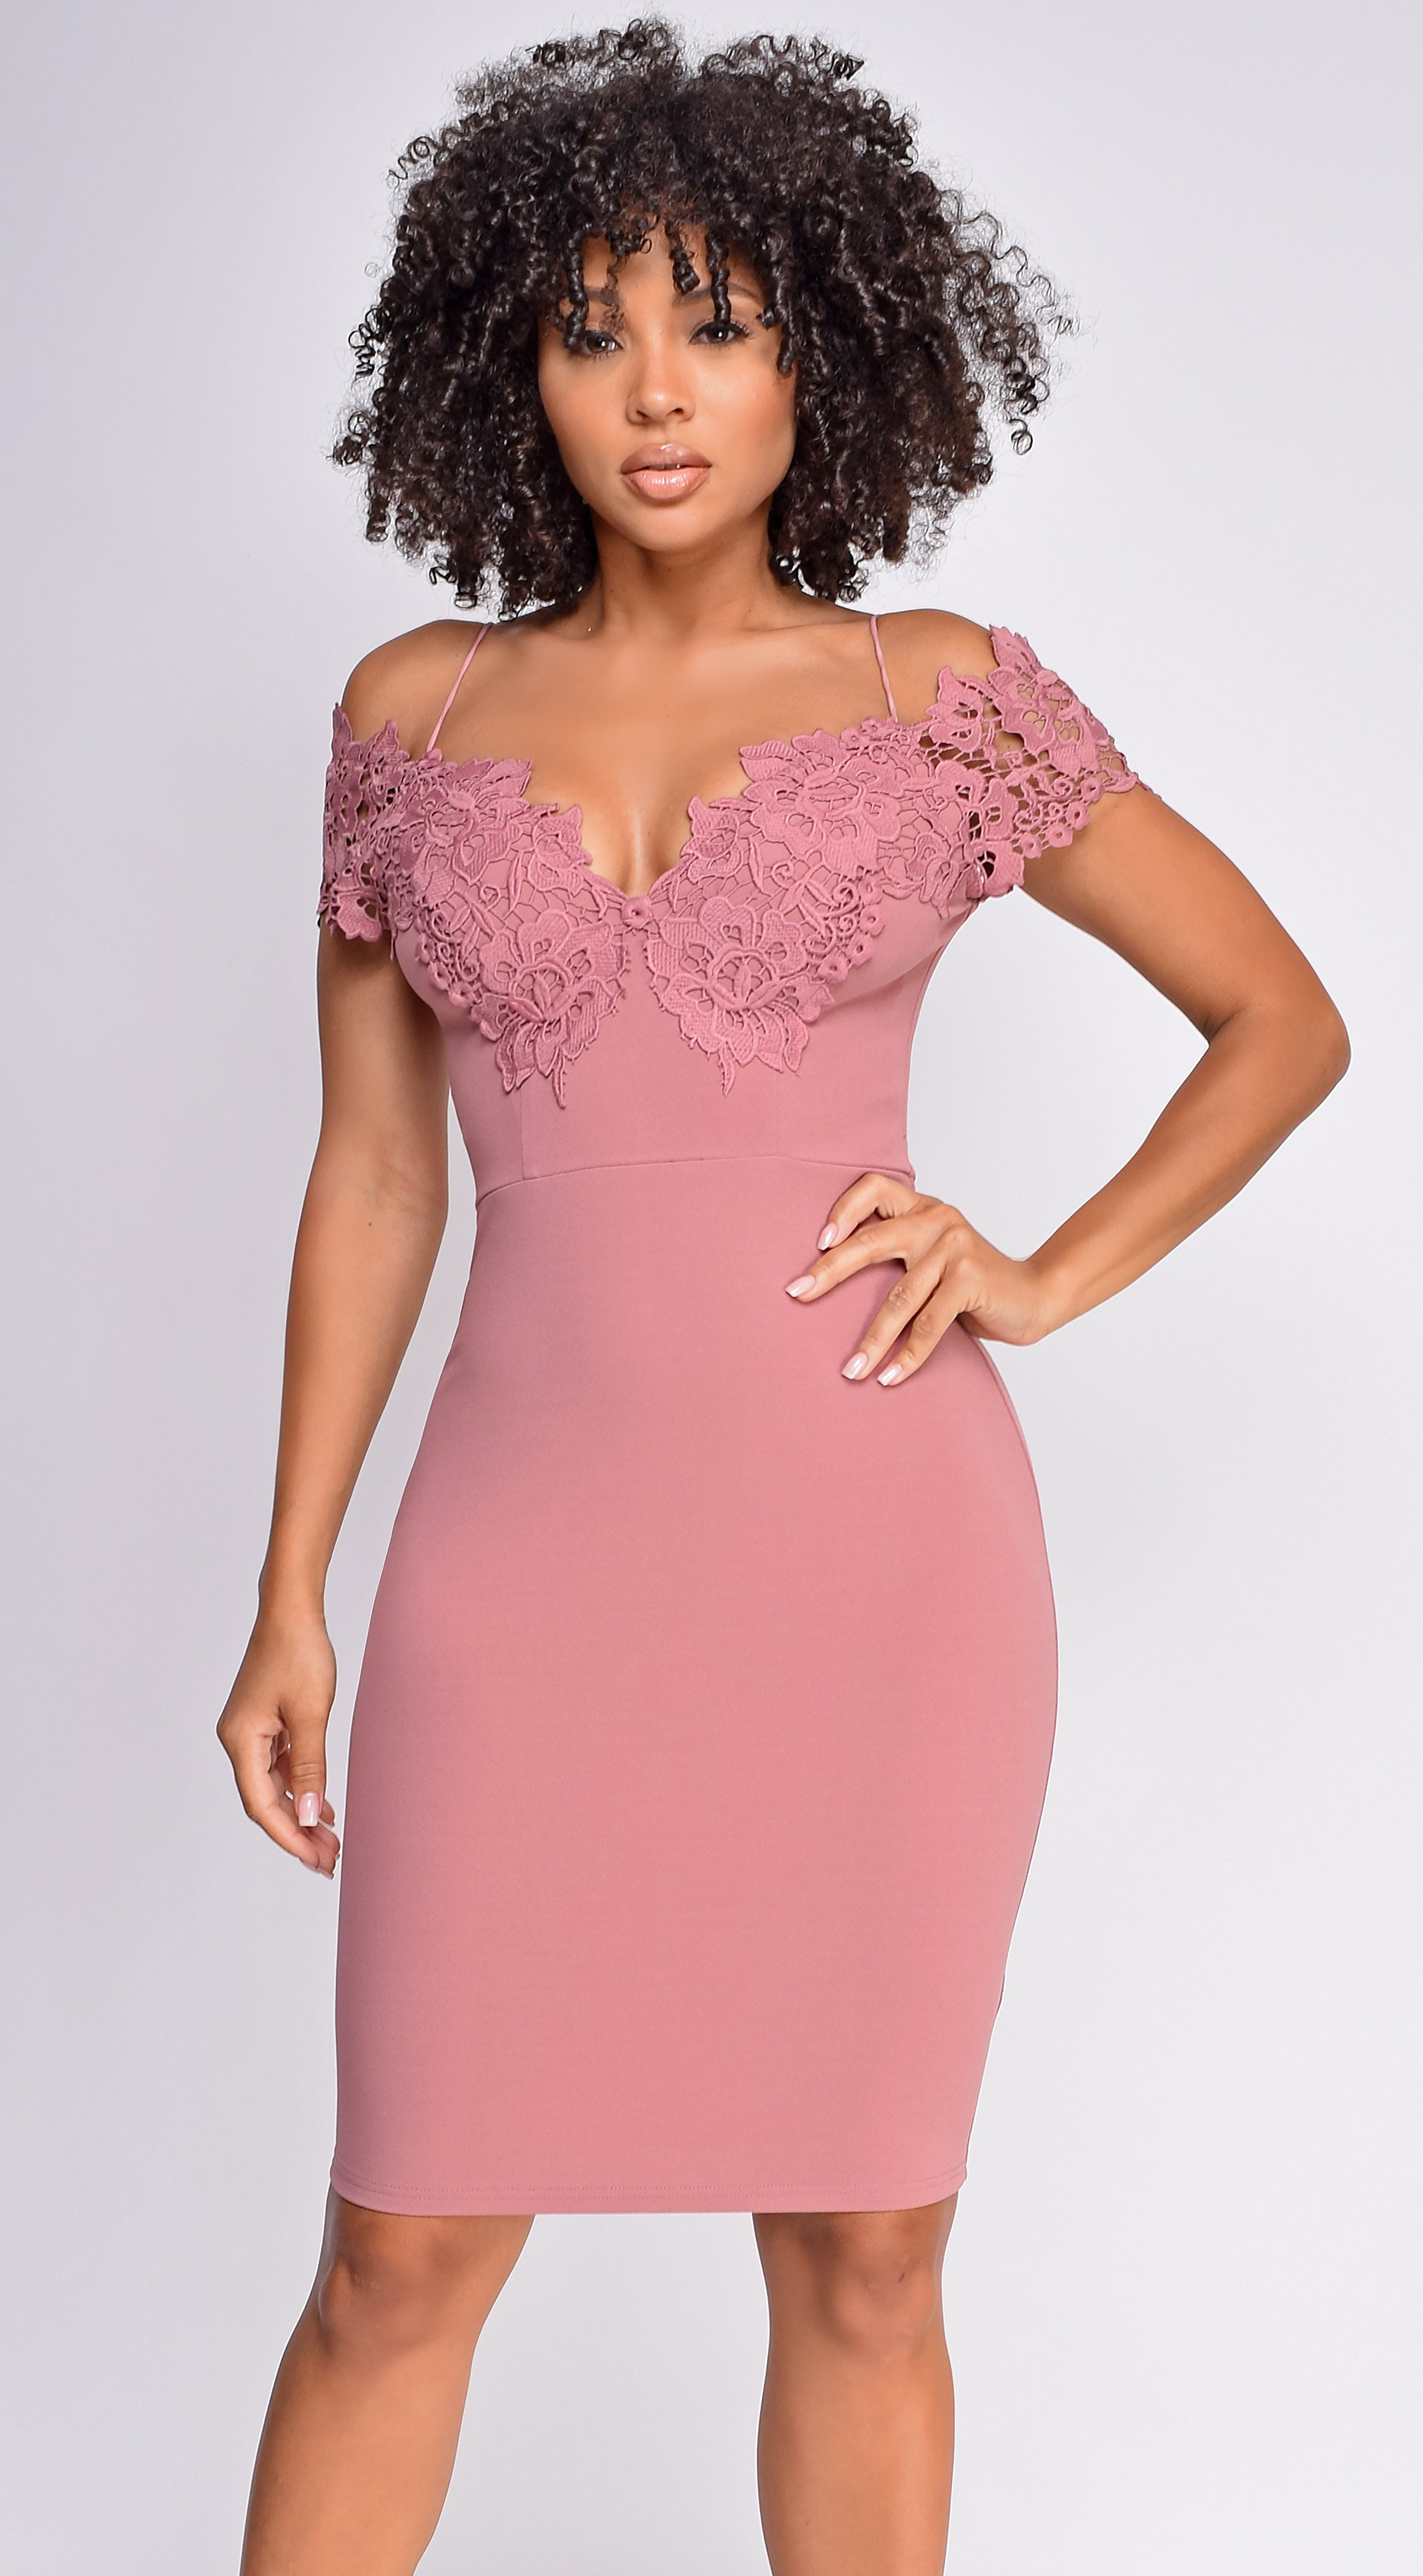 Teana Mauve Pink Lace Off Shoulder Dress